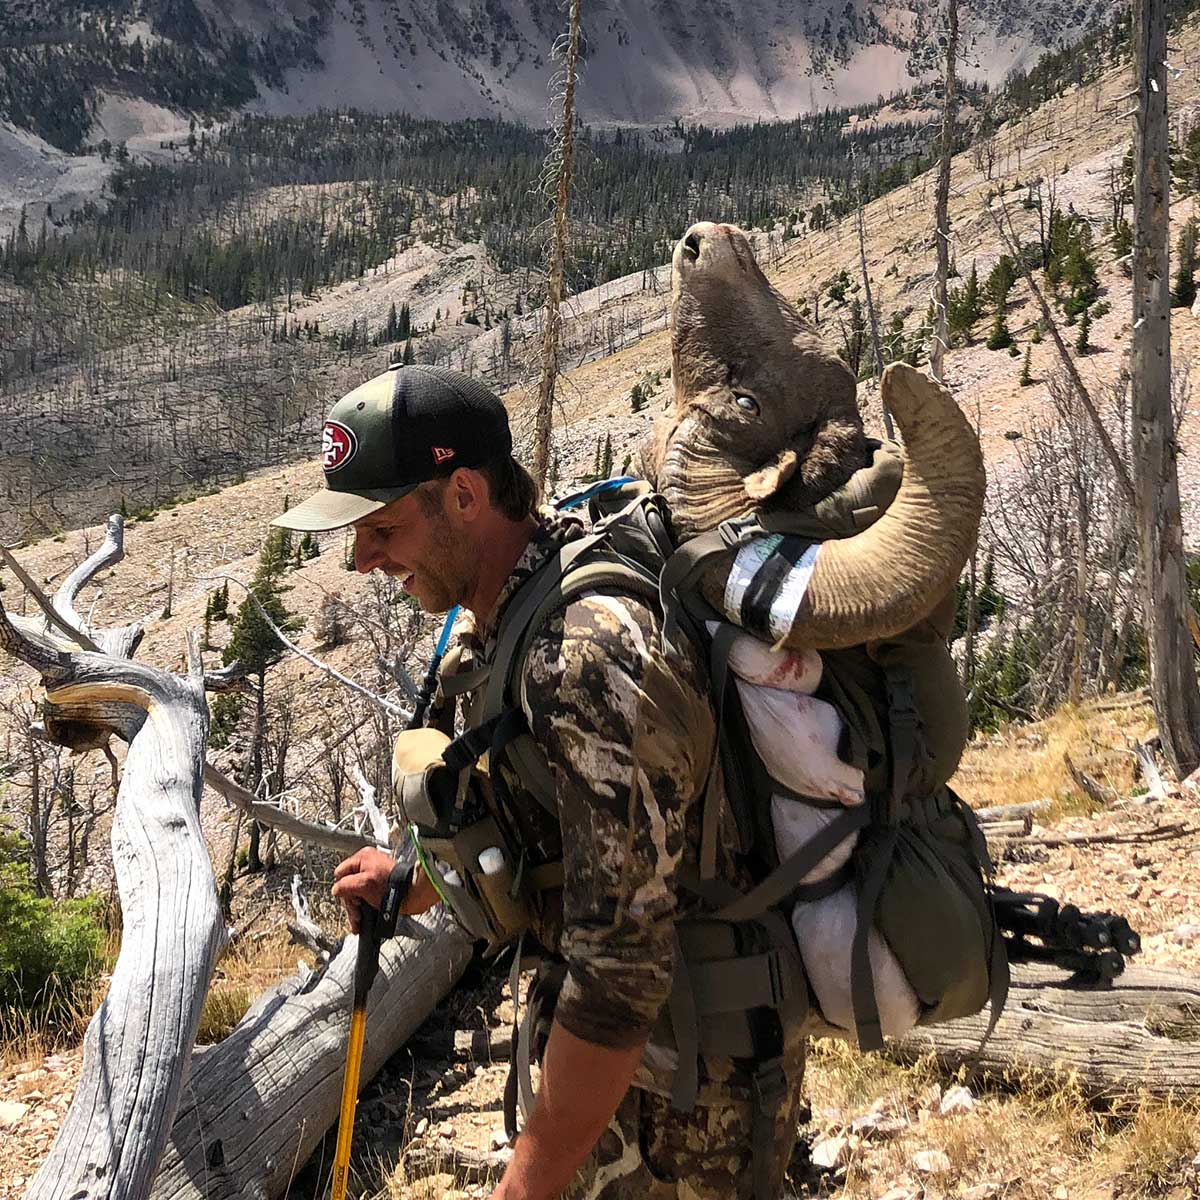 3200 Pack System with Bighorn Sheep